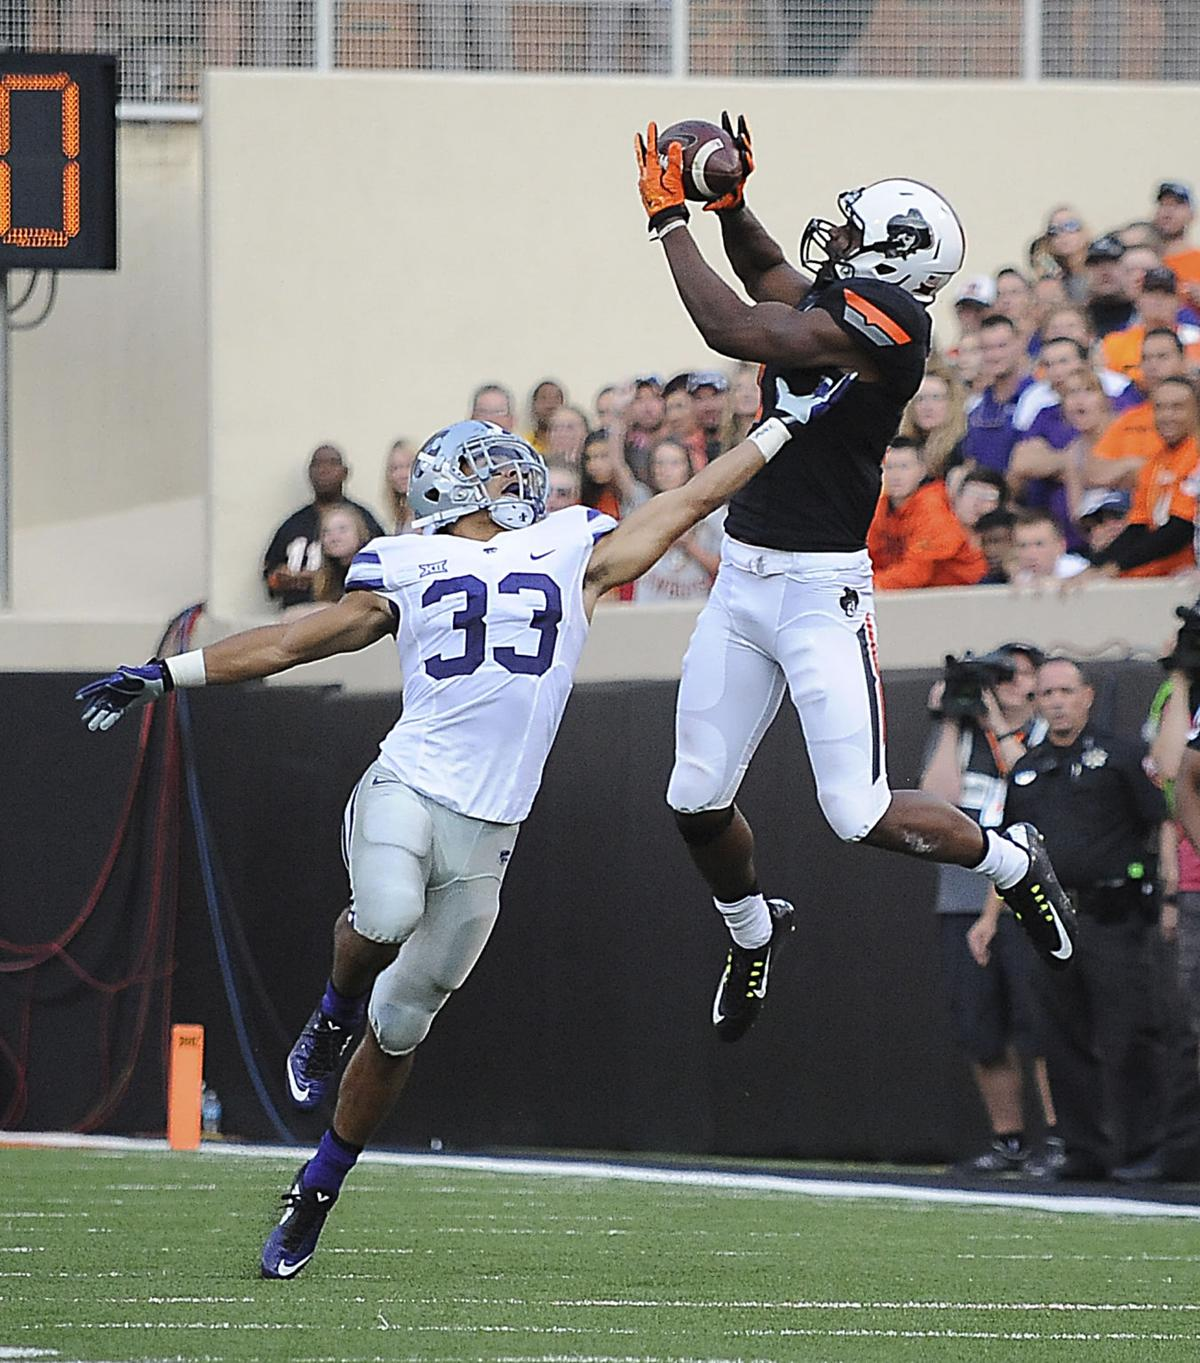 Oklahoma State football vs Kansas State | Gallery ...